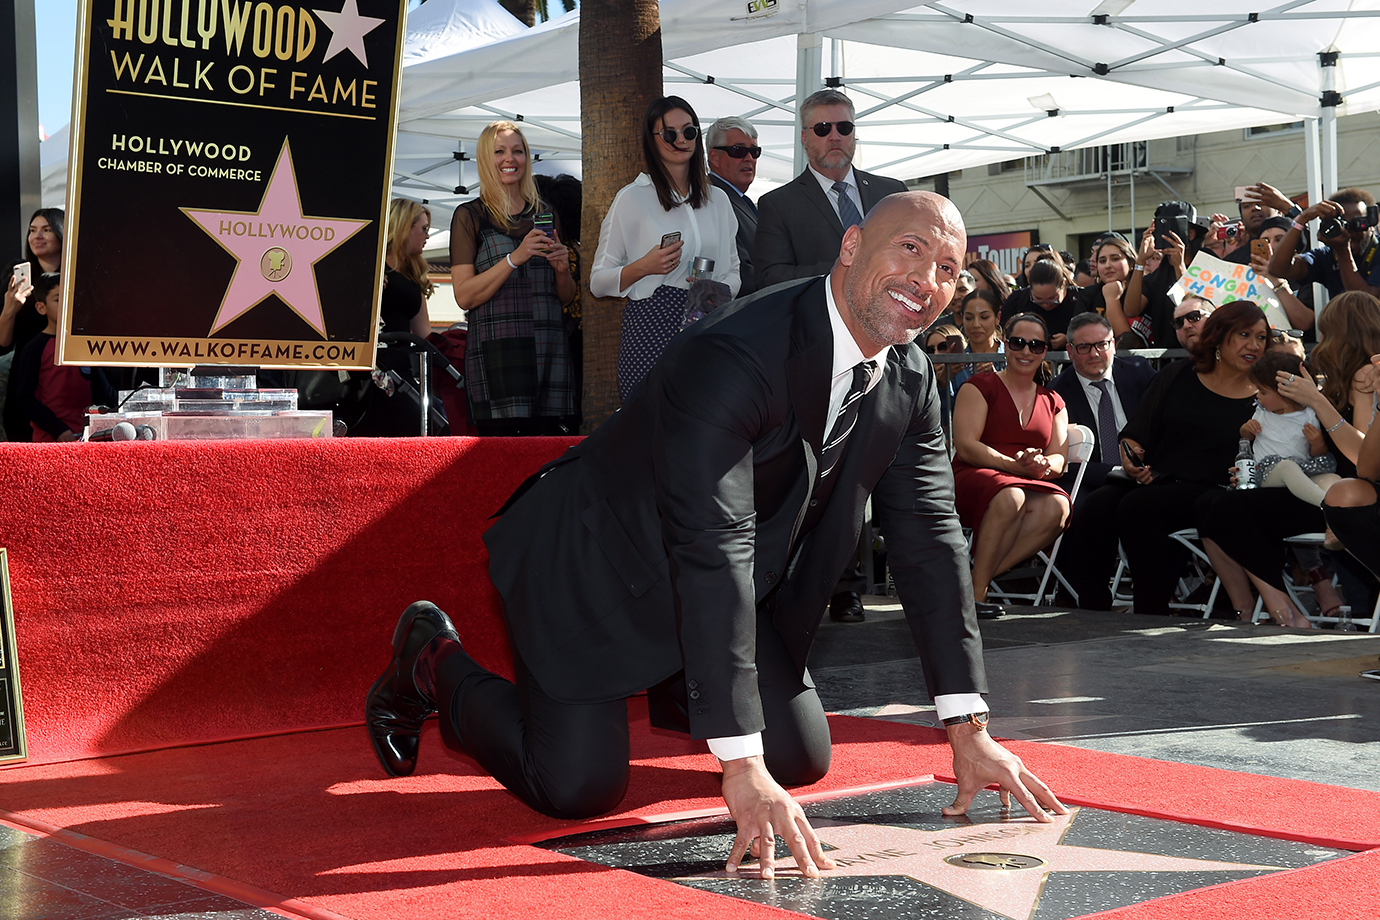 HOLLYWOOD, CA - DECEMBER 13: Actor Dwayne Johnson is honored with star on the Hollywood Walk of Fame on December 13, 2017 in Hollywood, California.